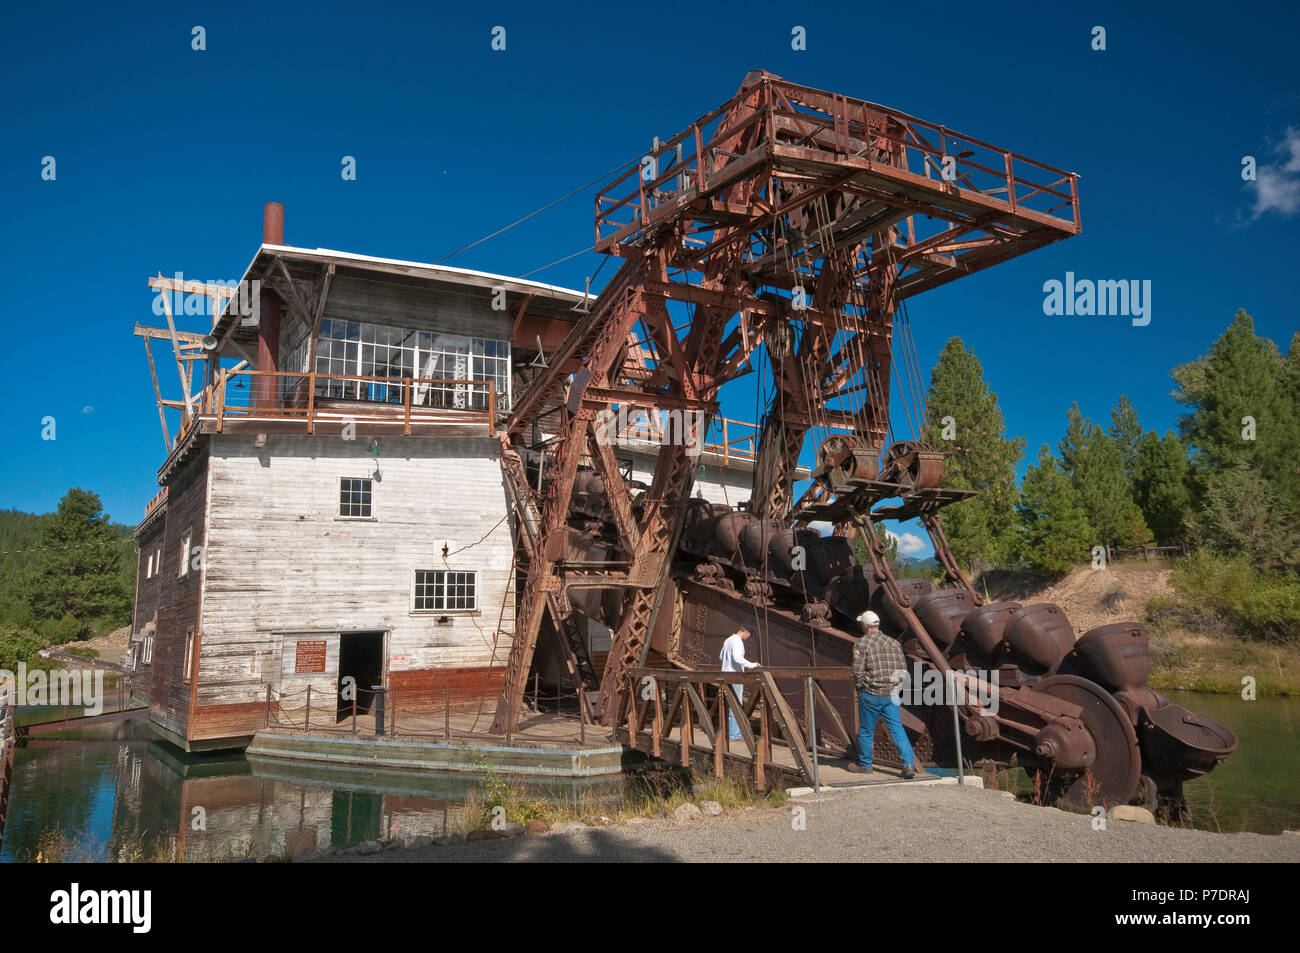 Boom with buckets at historic gold mining dredge in Sumpter in Blue Mountains, Oregon, USA - Stock Image